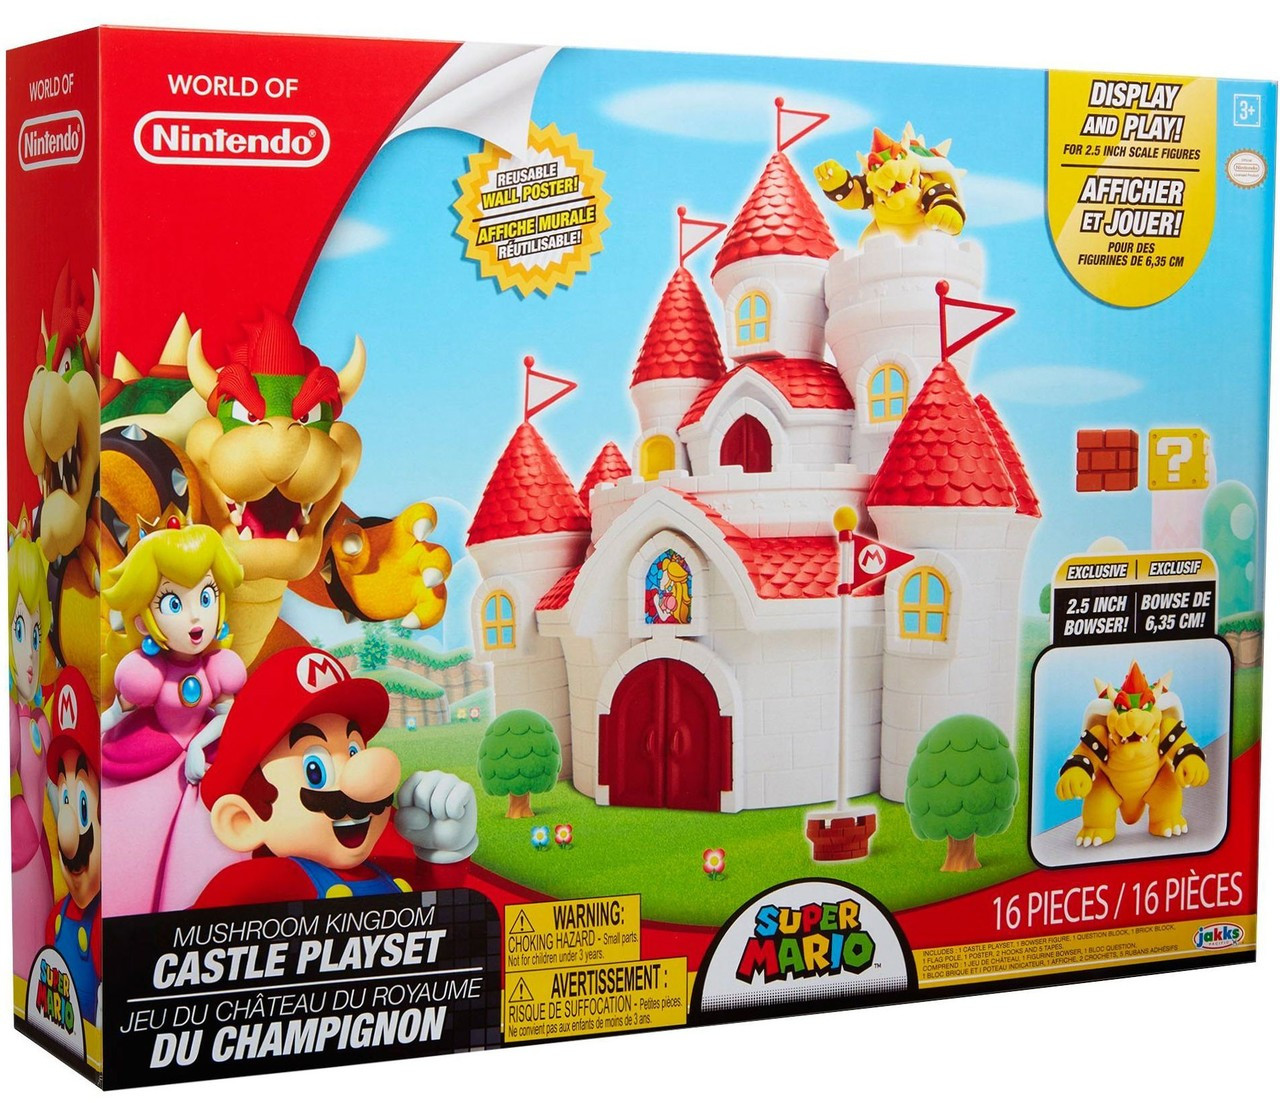 World Of Nintendo Super Mario Mushroom Kingdom Castle Playset Regular Version Jakks Pacific Toywiz